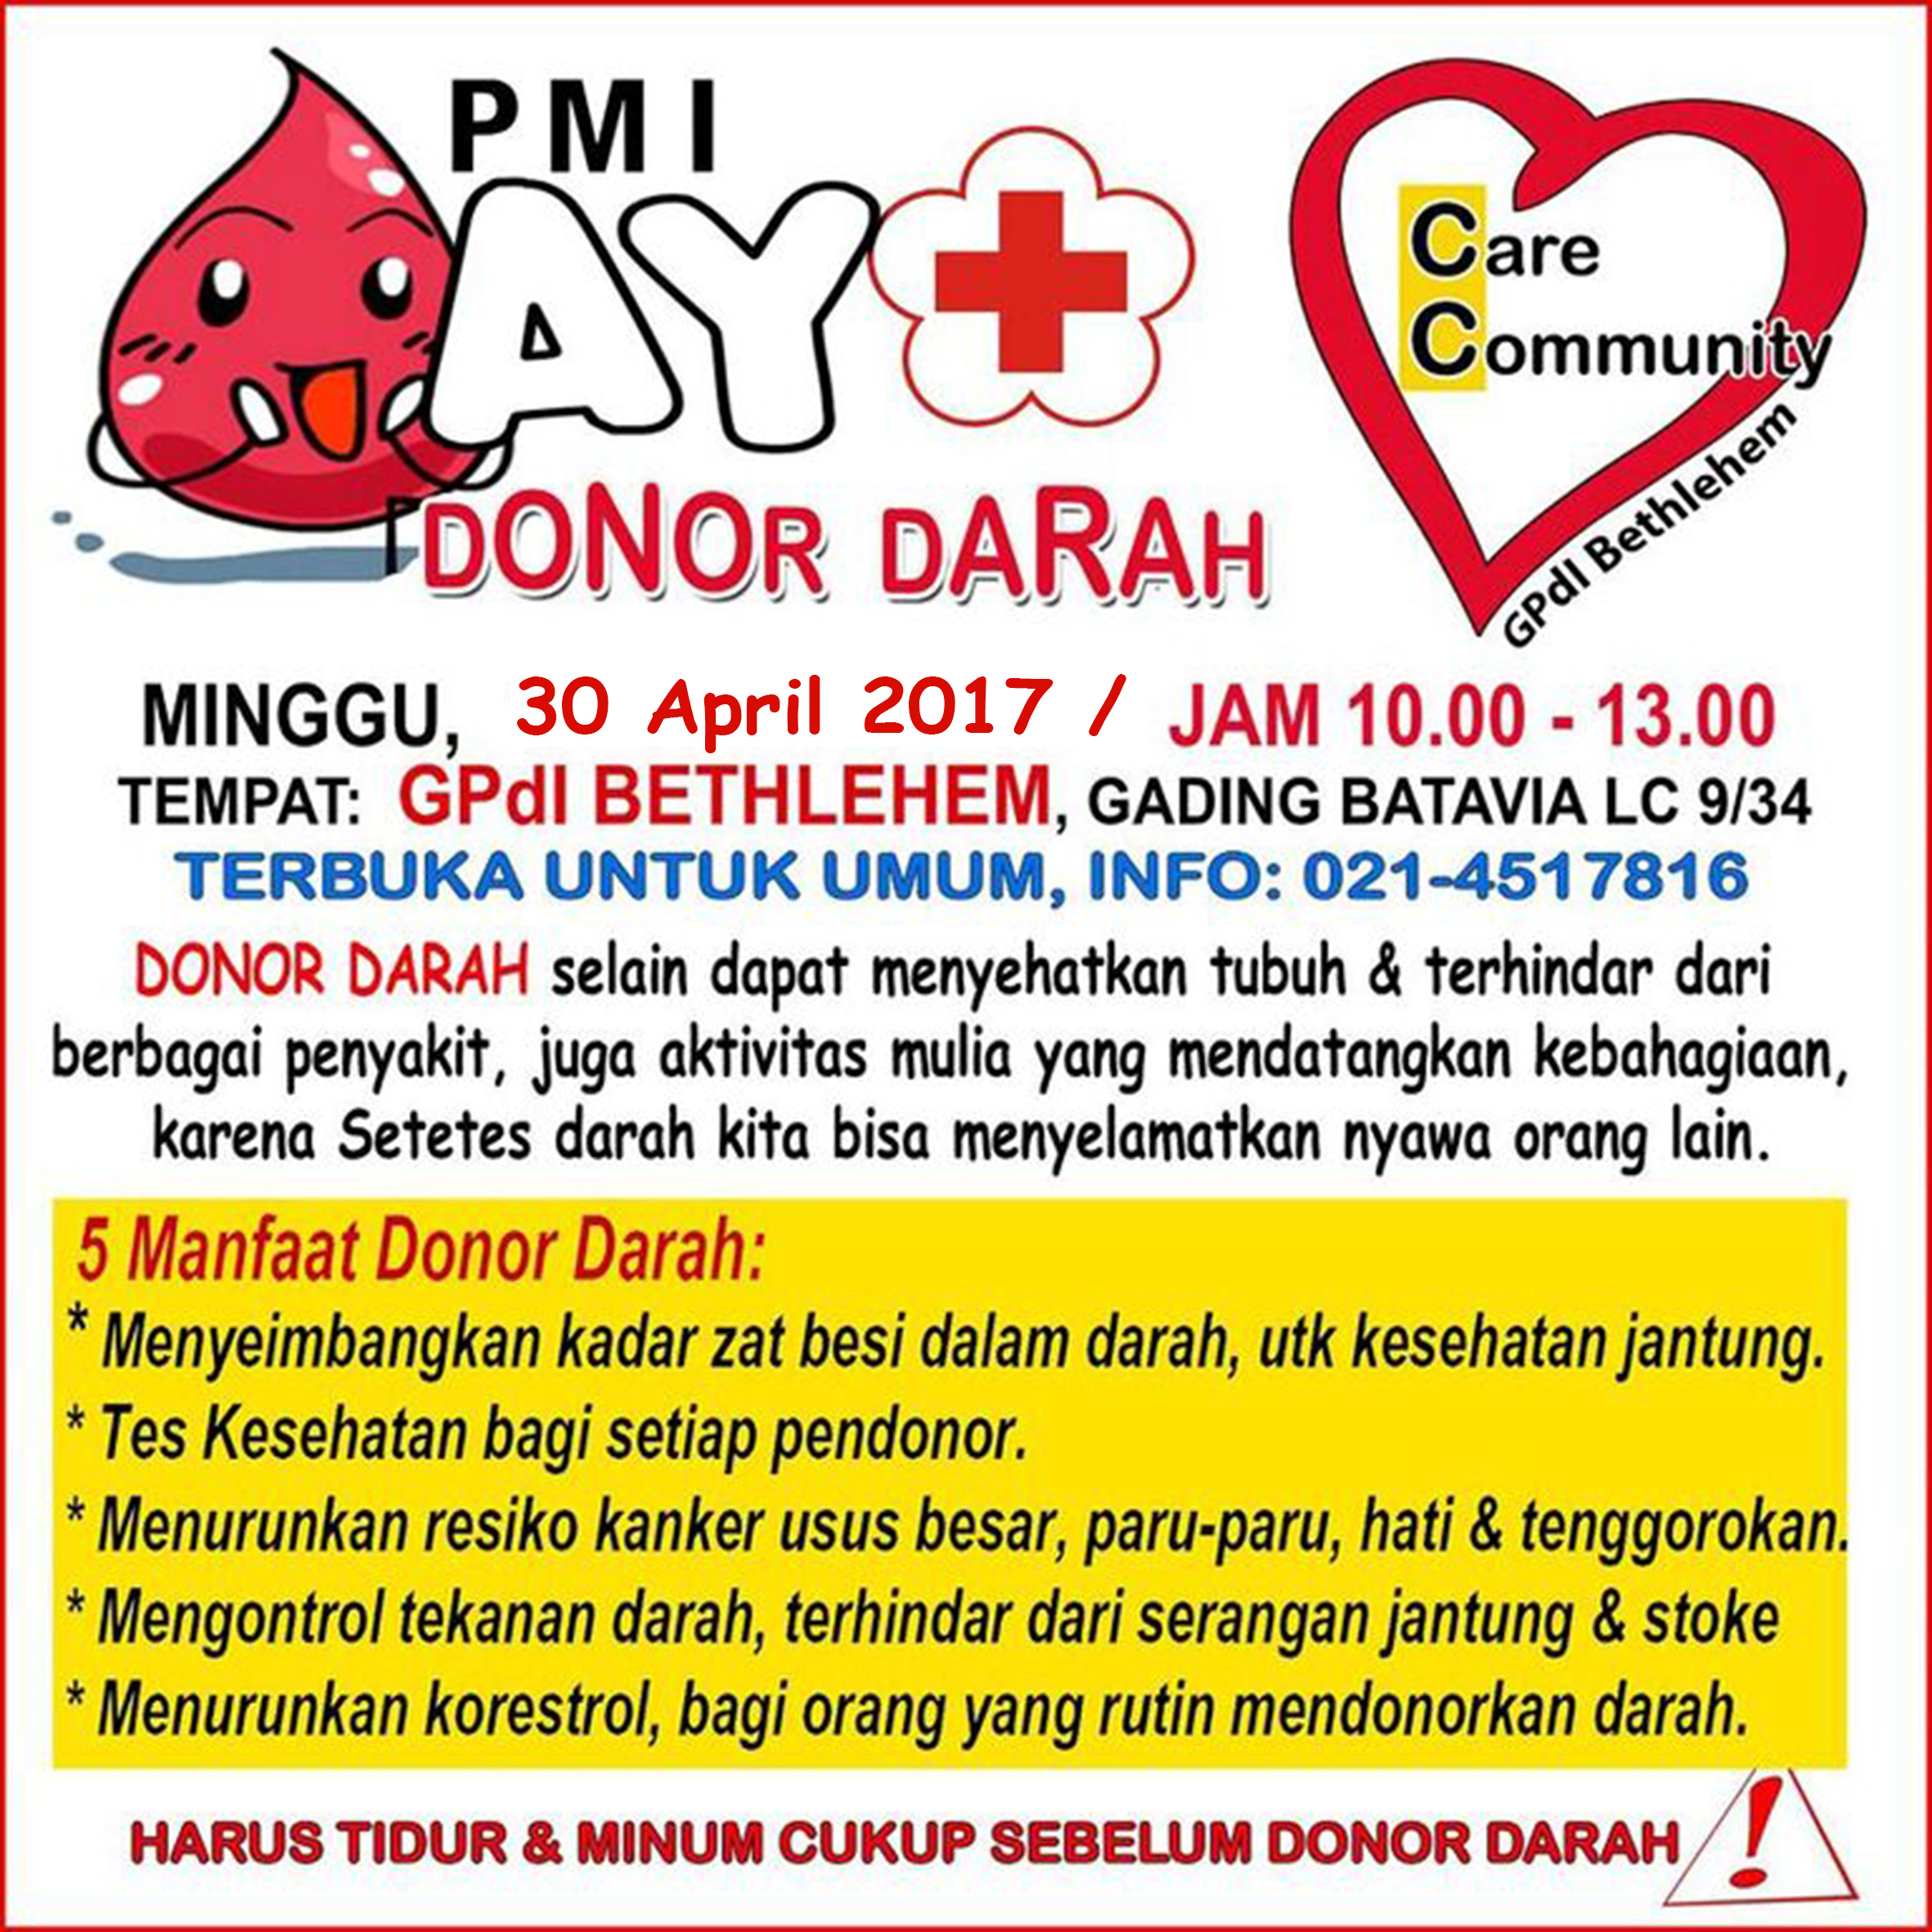 's Do it ! Donor darah 30 Apr 2017